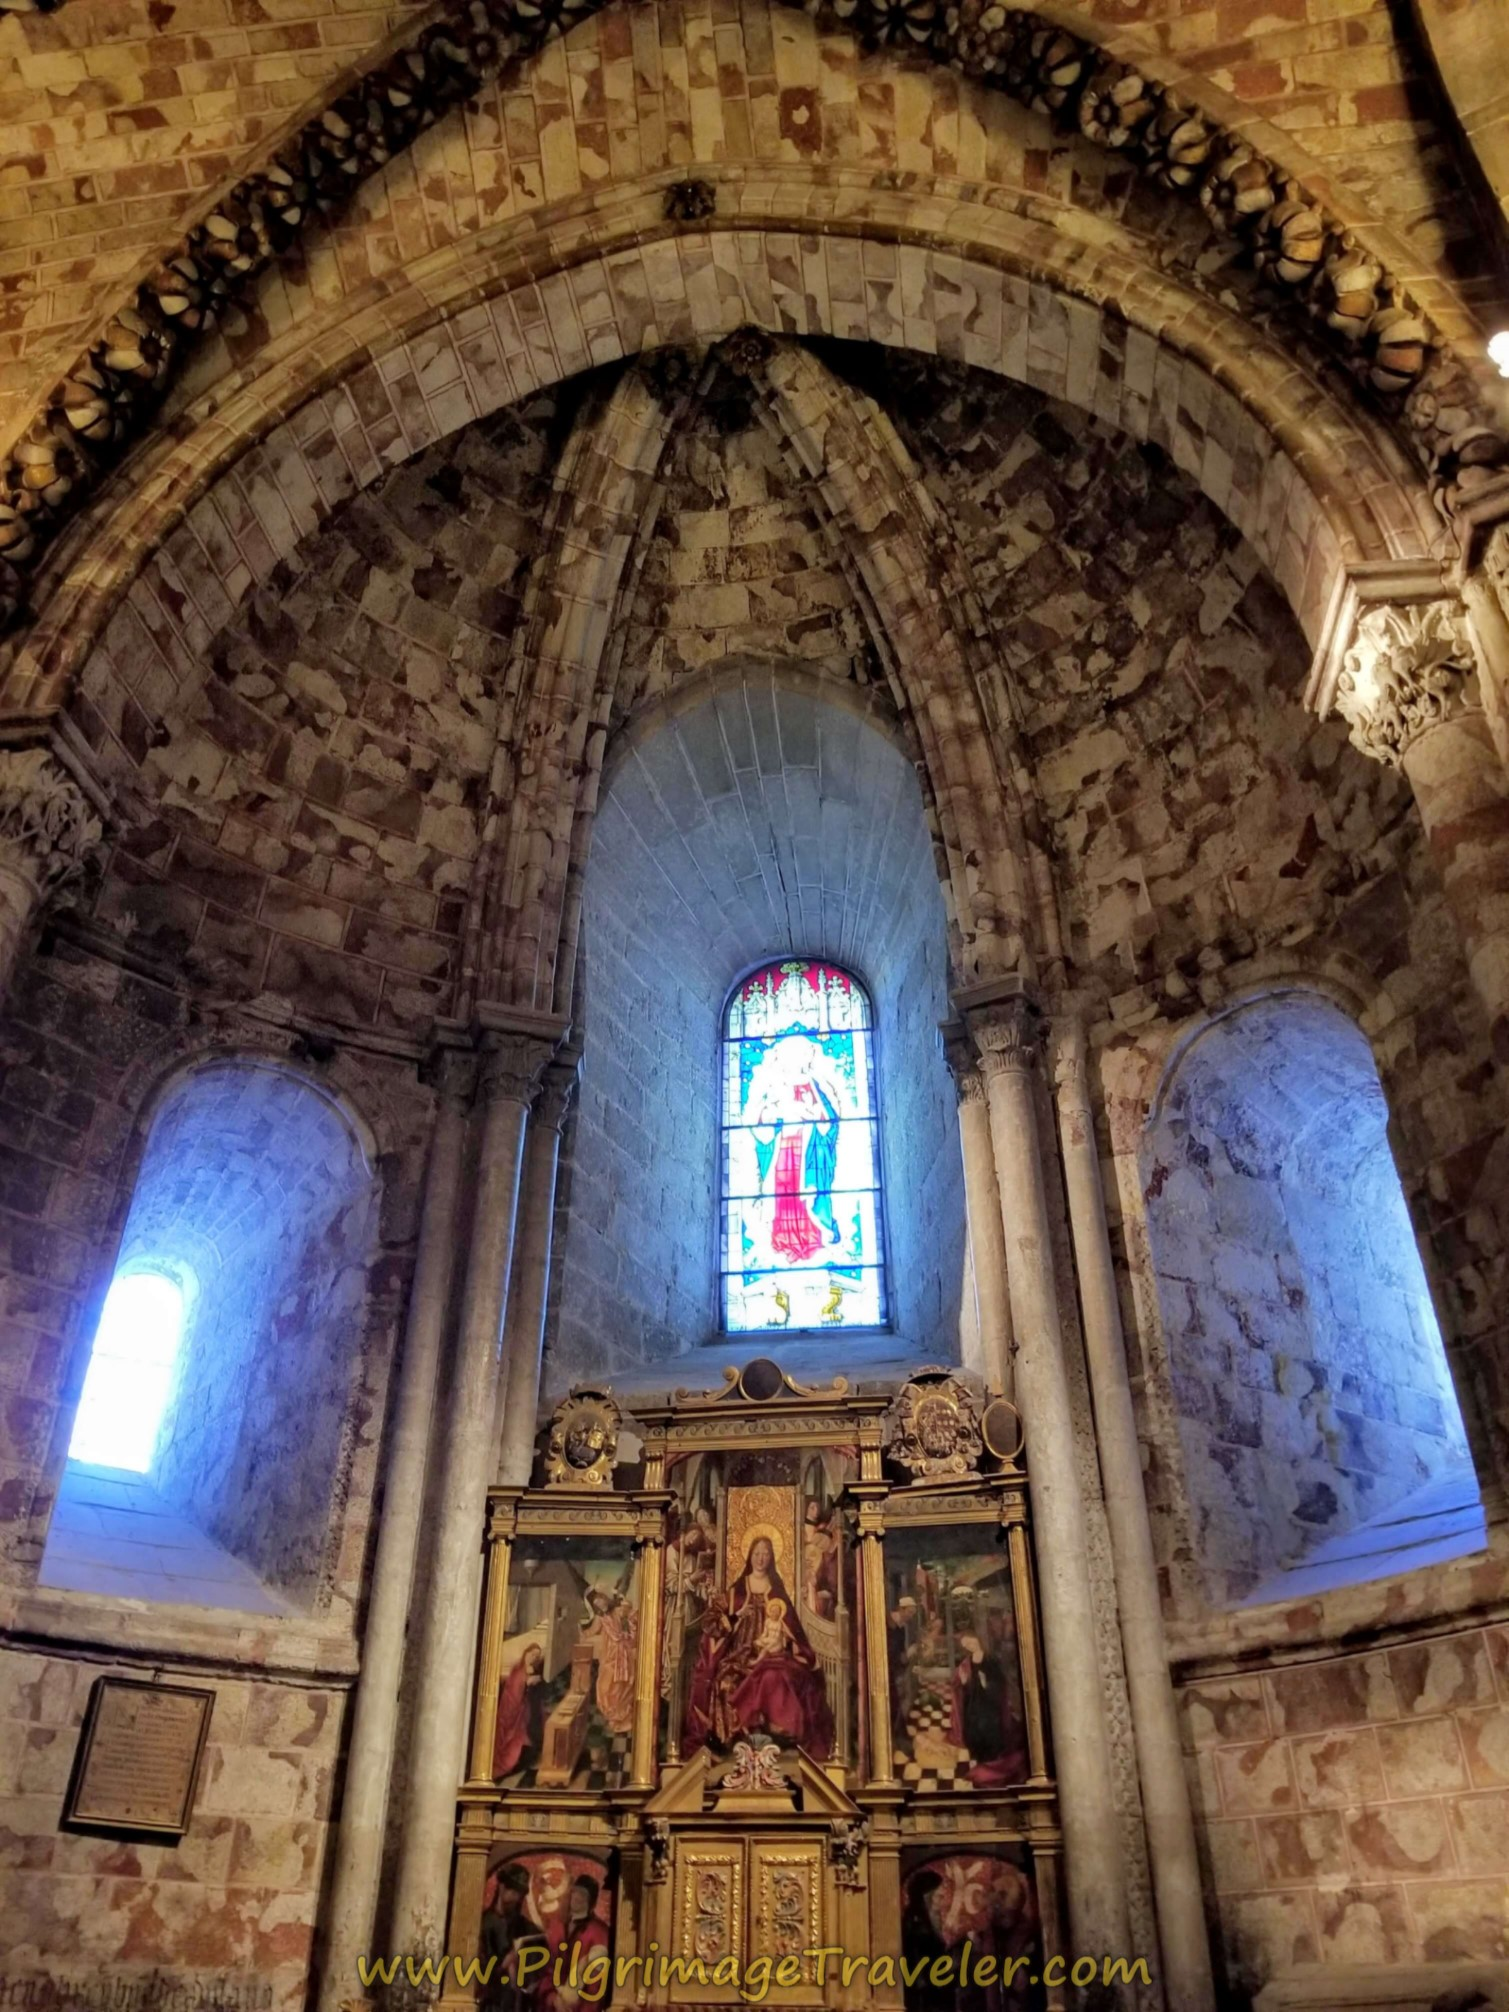 Stained glass windows in a side chapel, in the ambulatory of the Catedral de Ávila